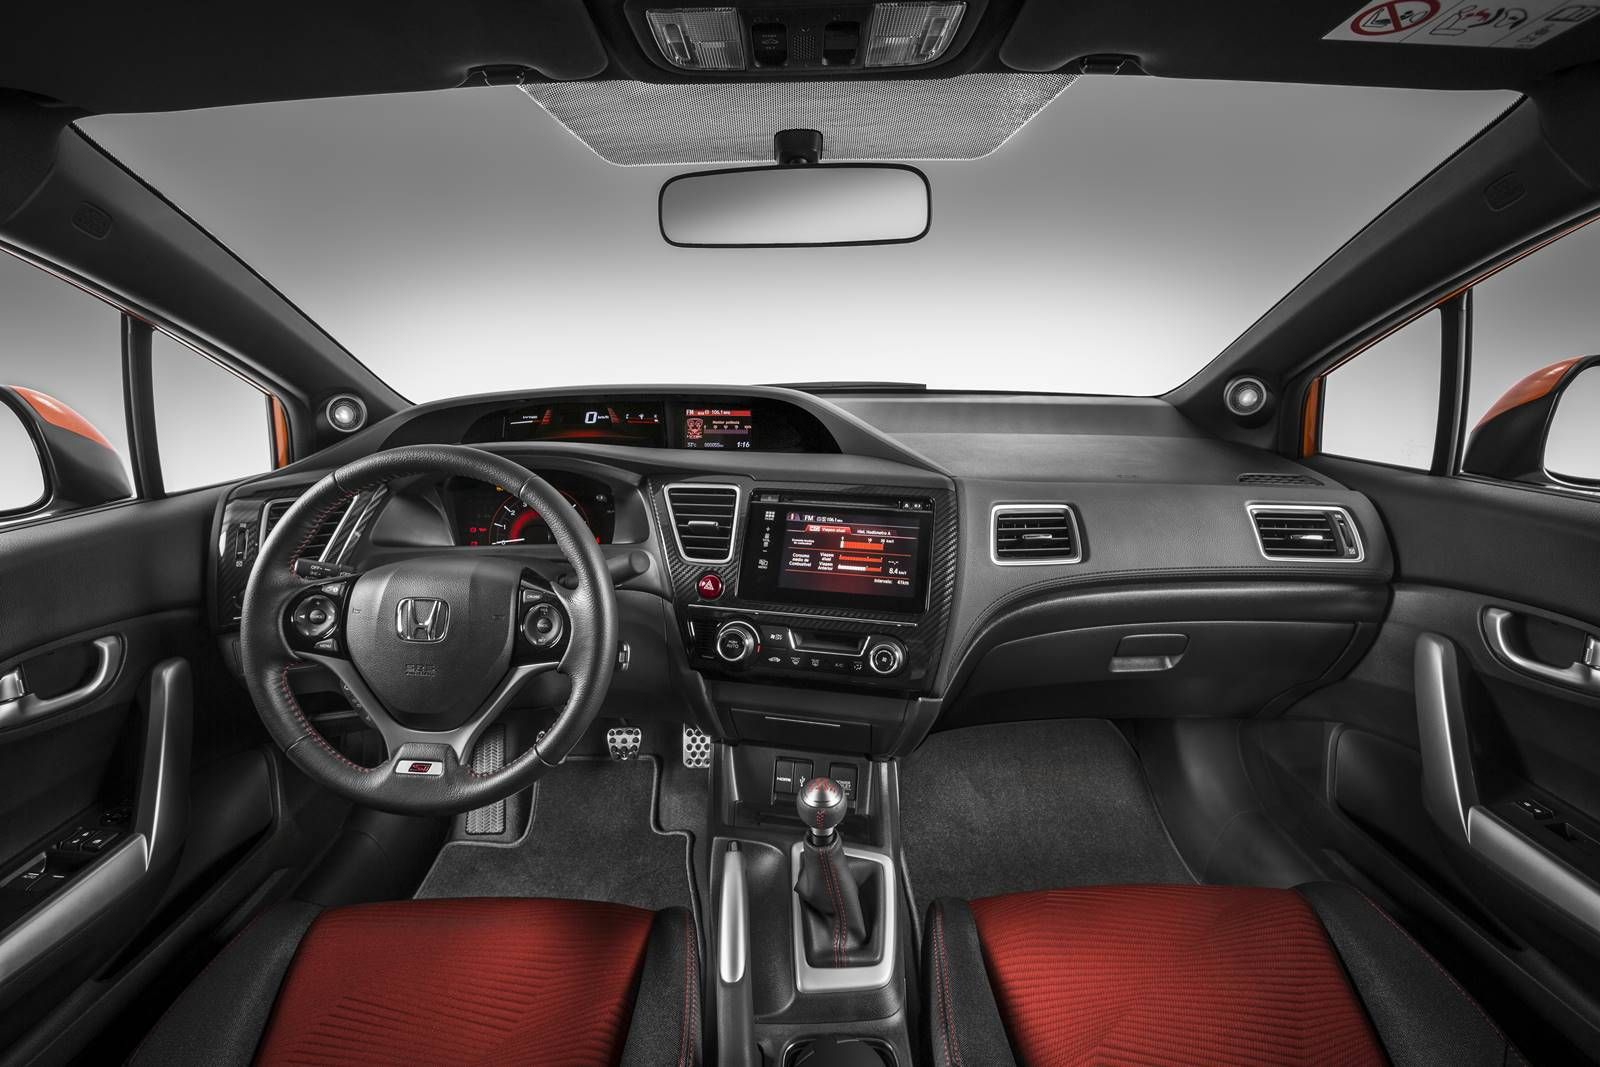 Honda Civic Si 2015 Interior From Back Angle Pictures